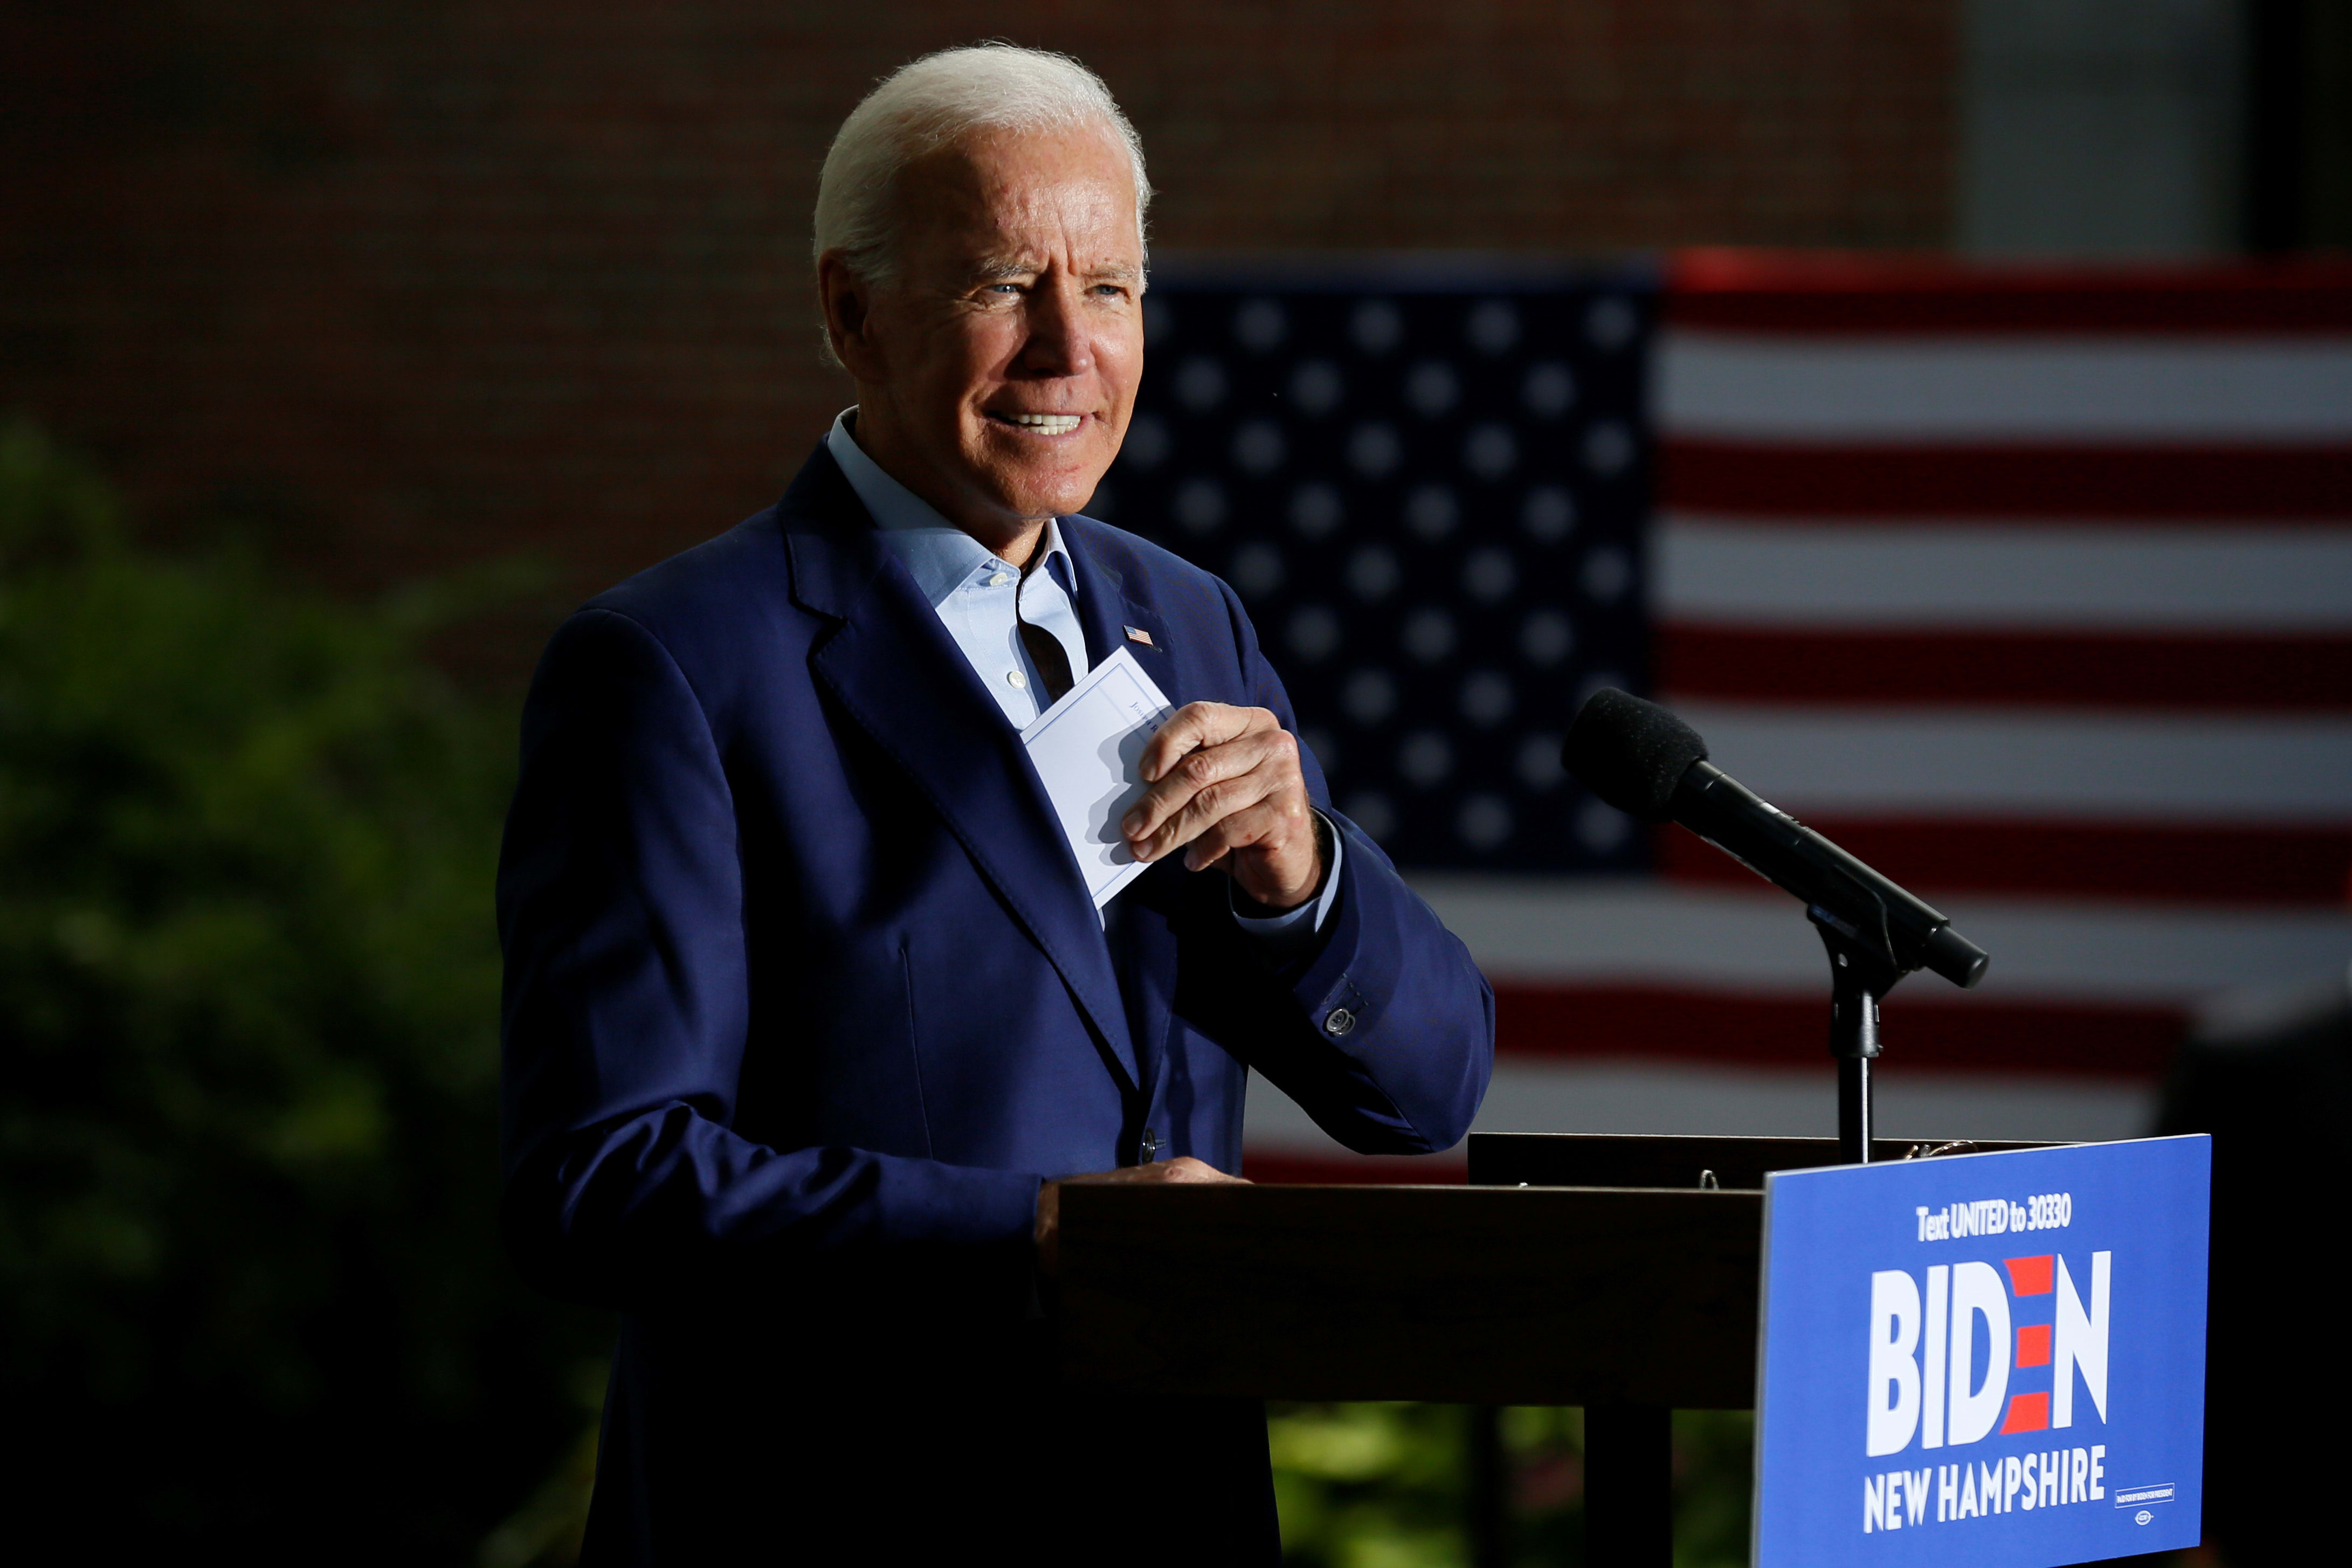 Joe Biden hints at his plan to address student debt and college costs